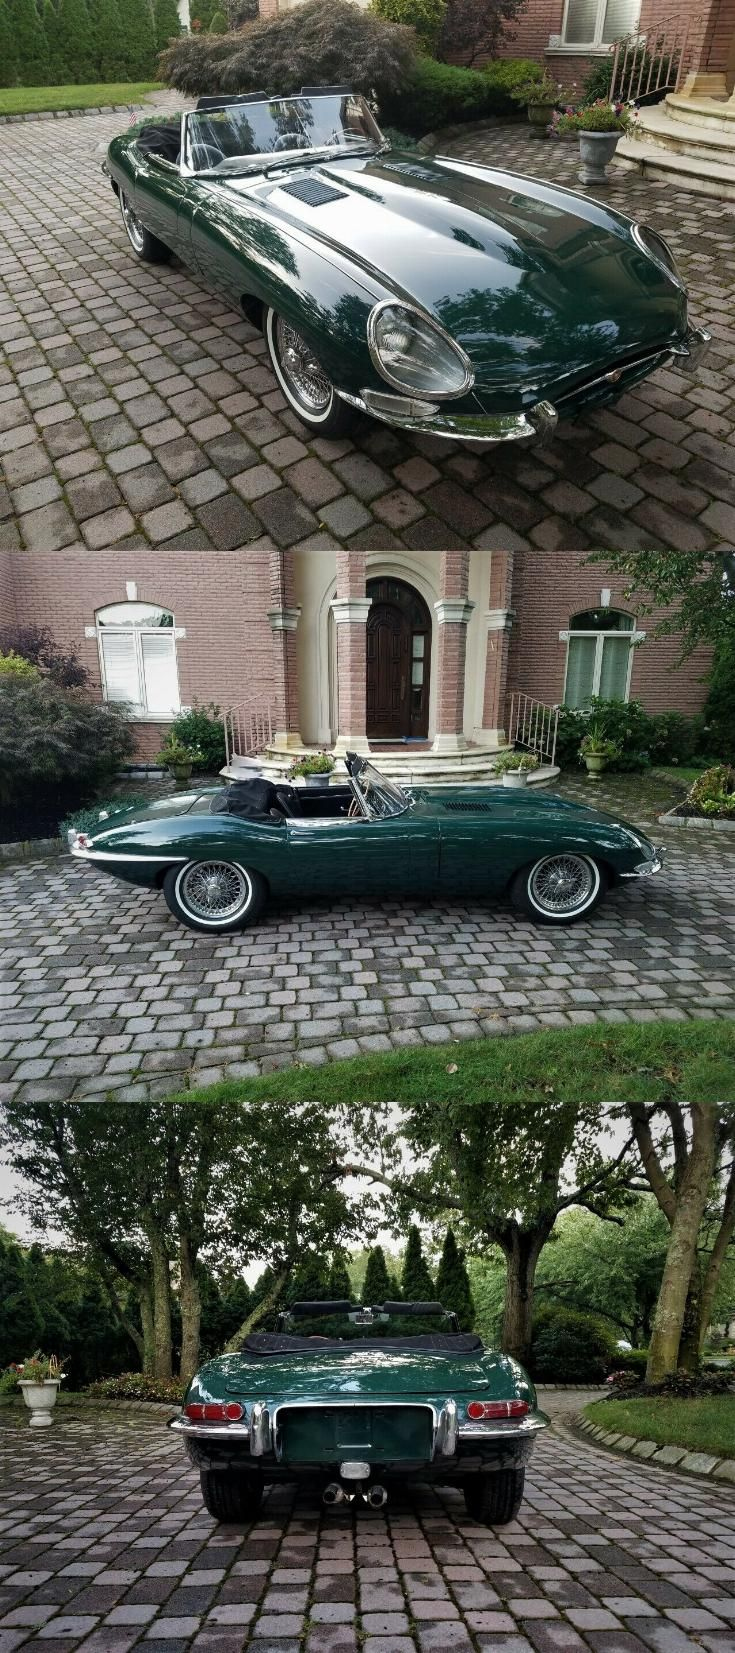 Recently Maintained 1962 Jaguar E Type Roadster Convertible In 2020 Jaguar E Type Jaguar Convertible Jaguar E